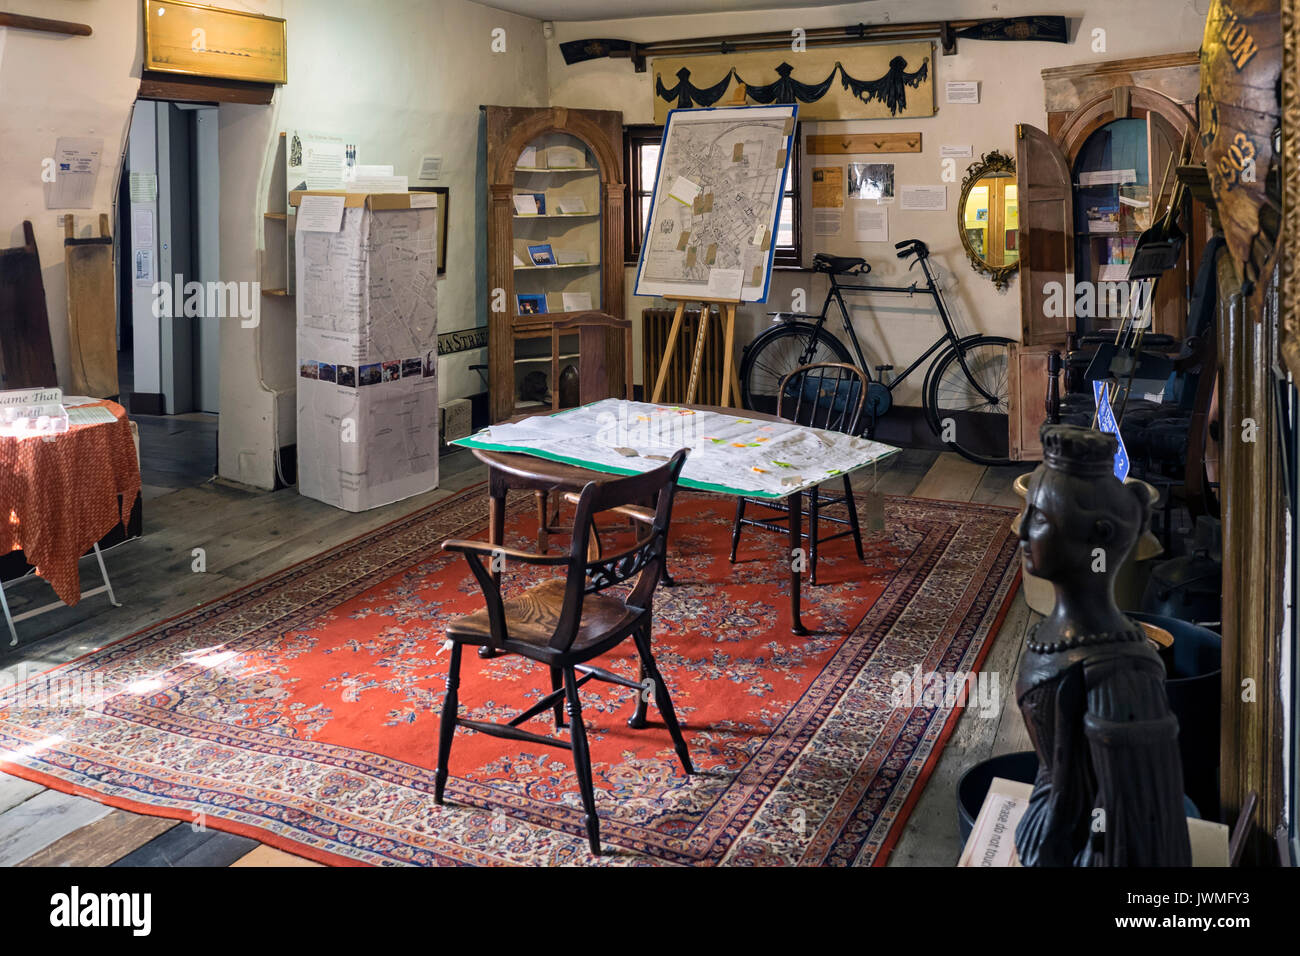 MUSEUM OF CAMBRIDGE - General view of the Dining Parlour in the Museum.  Photos taken with the approval of the the Museum. - Stock Image